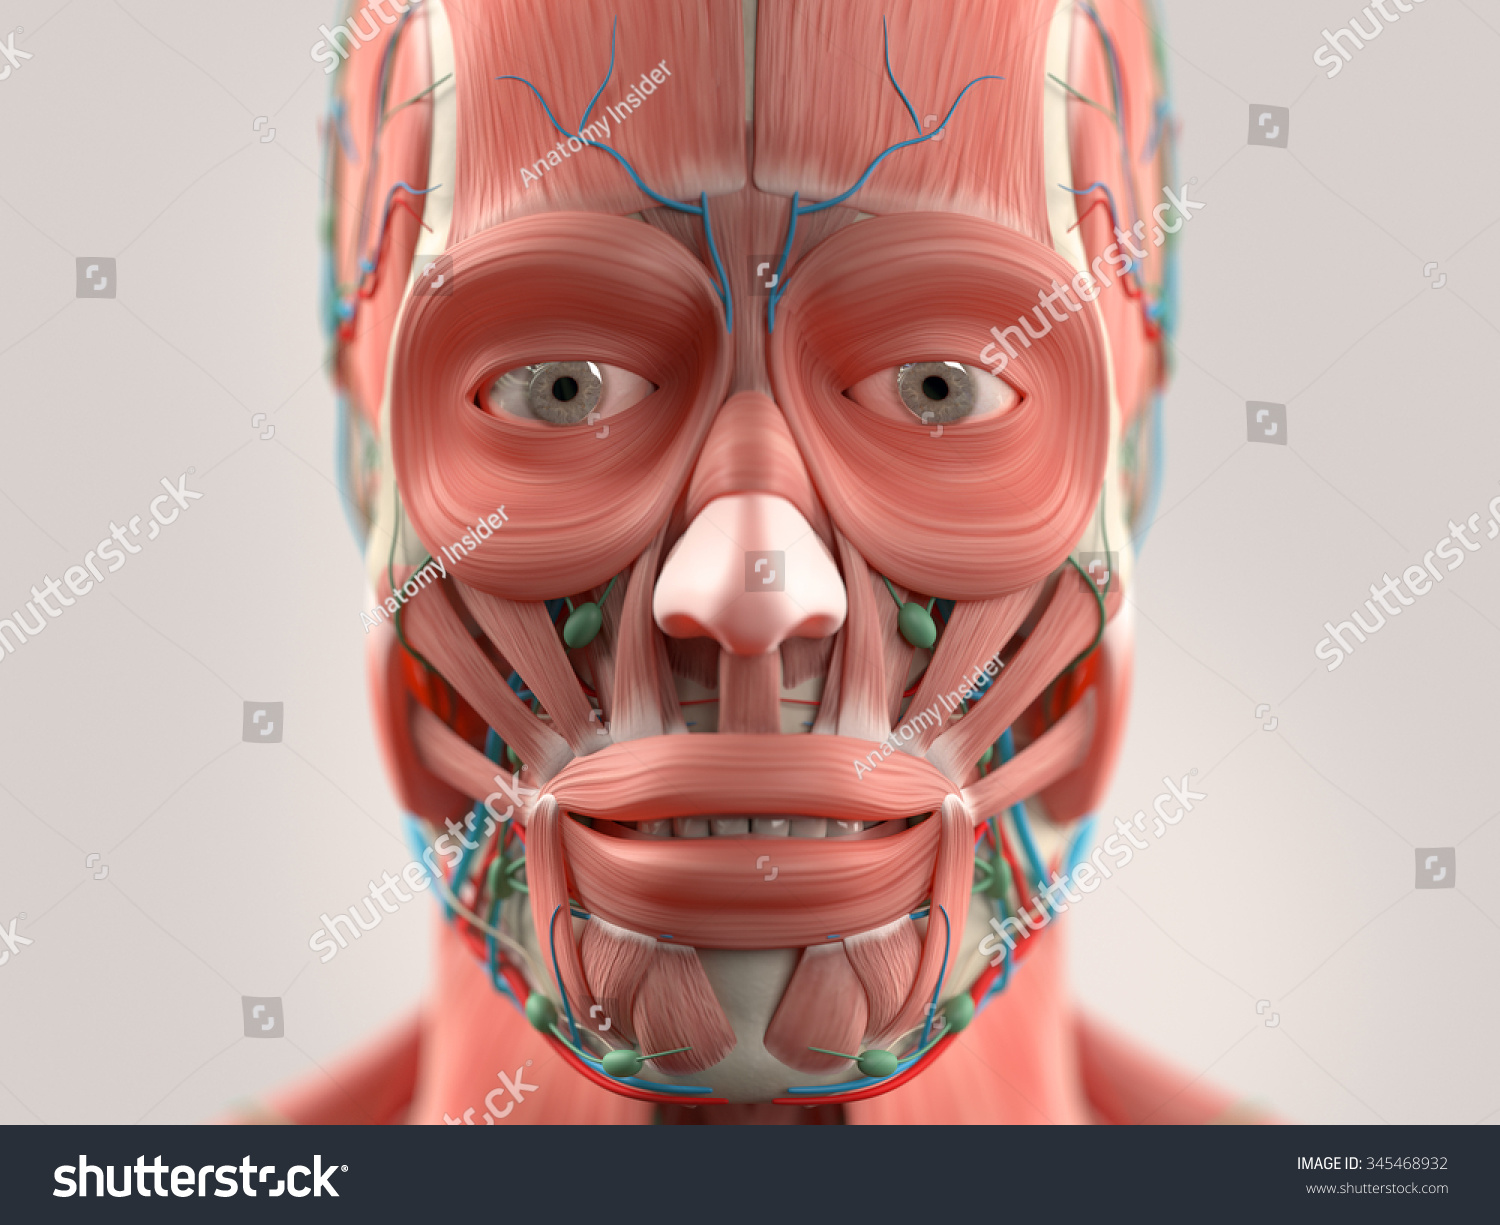 Human Anatomy Face Head Closeup Showing Stock Illustration 345468932